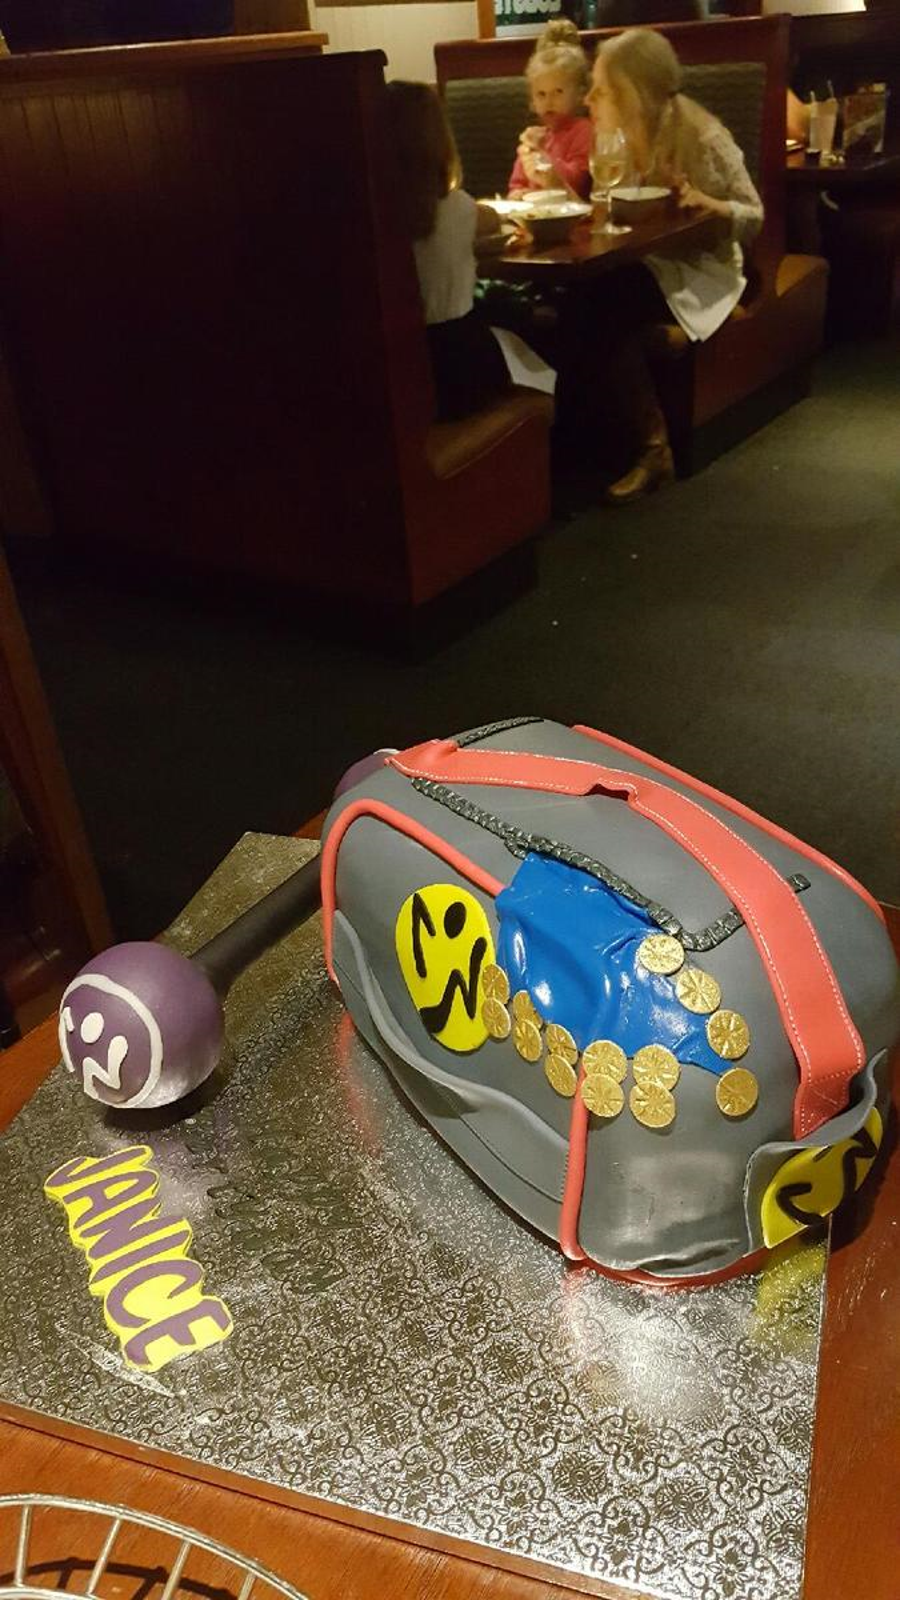 Zumba Gym Bag Cake For My Aunt Thank Goodness It Was I Had A Little Trouble With This One But Everyone Loved SIGH